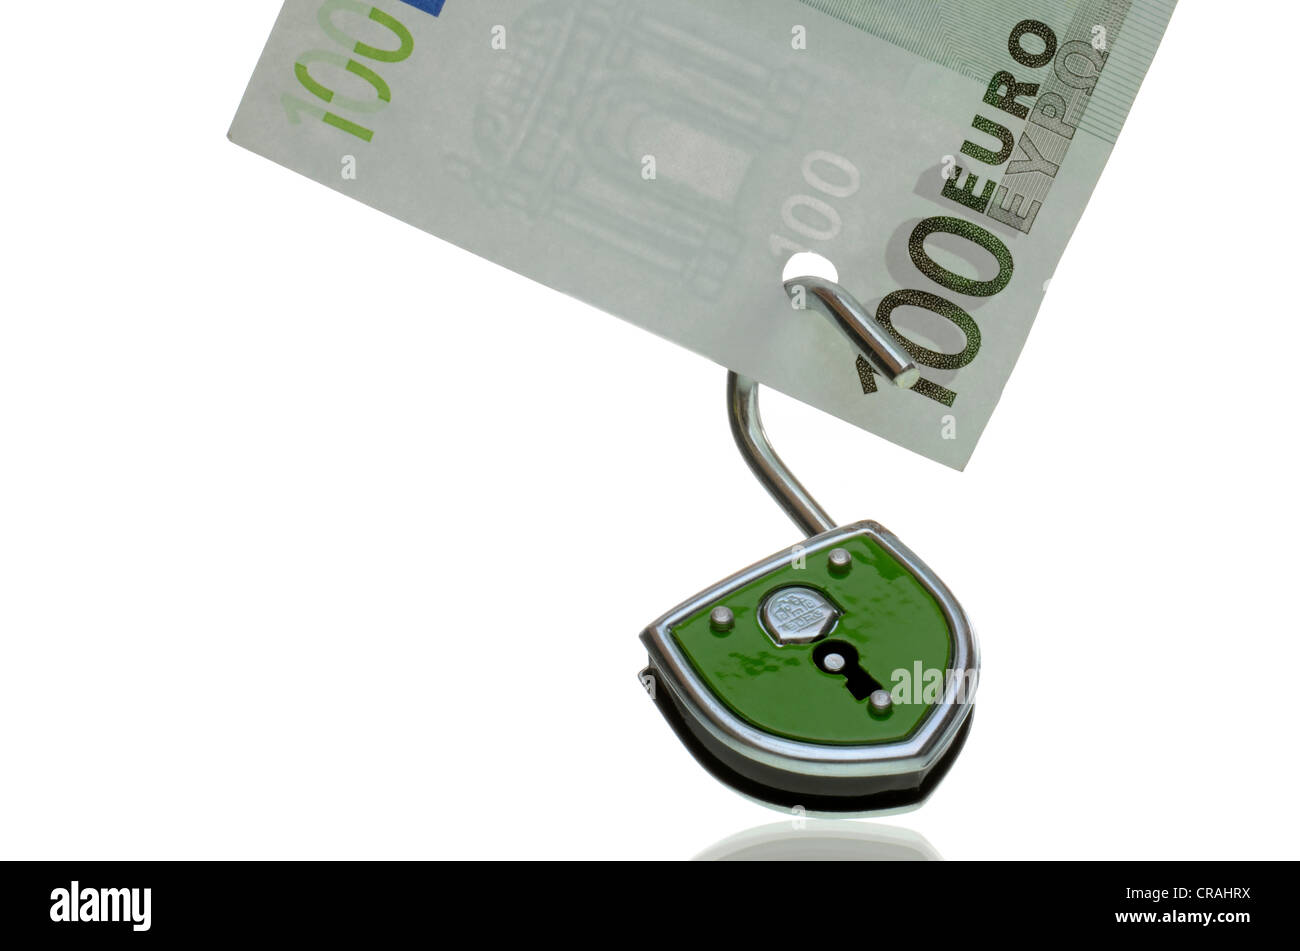 100-euro bill with an open lock, symbolic image for the unsafe euro, euro crisis Stock Photo